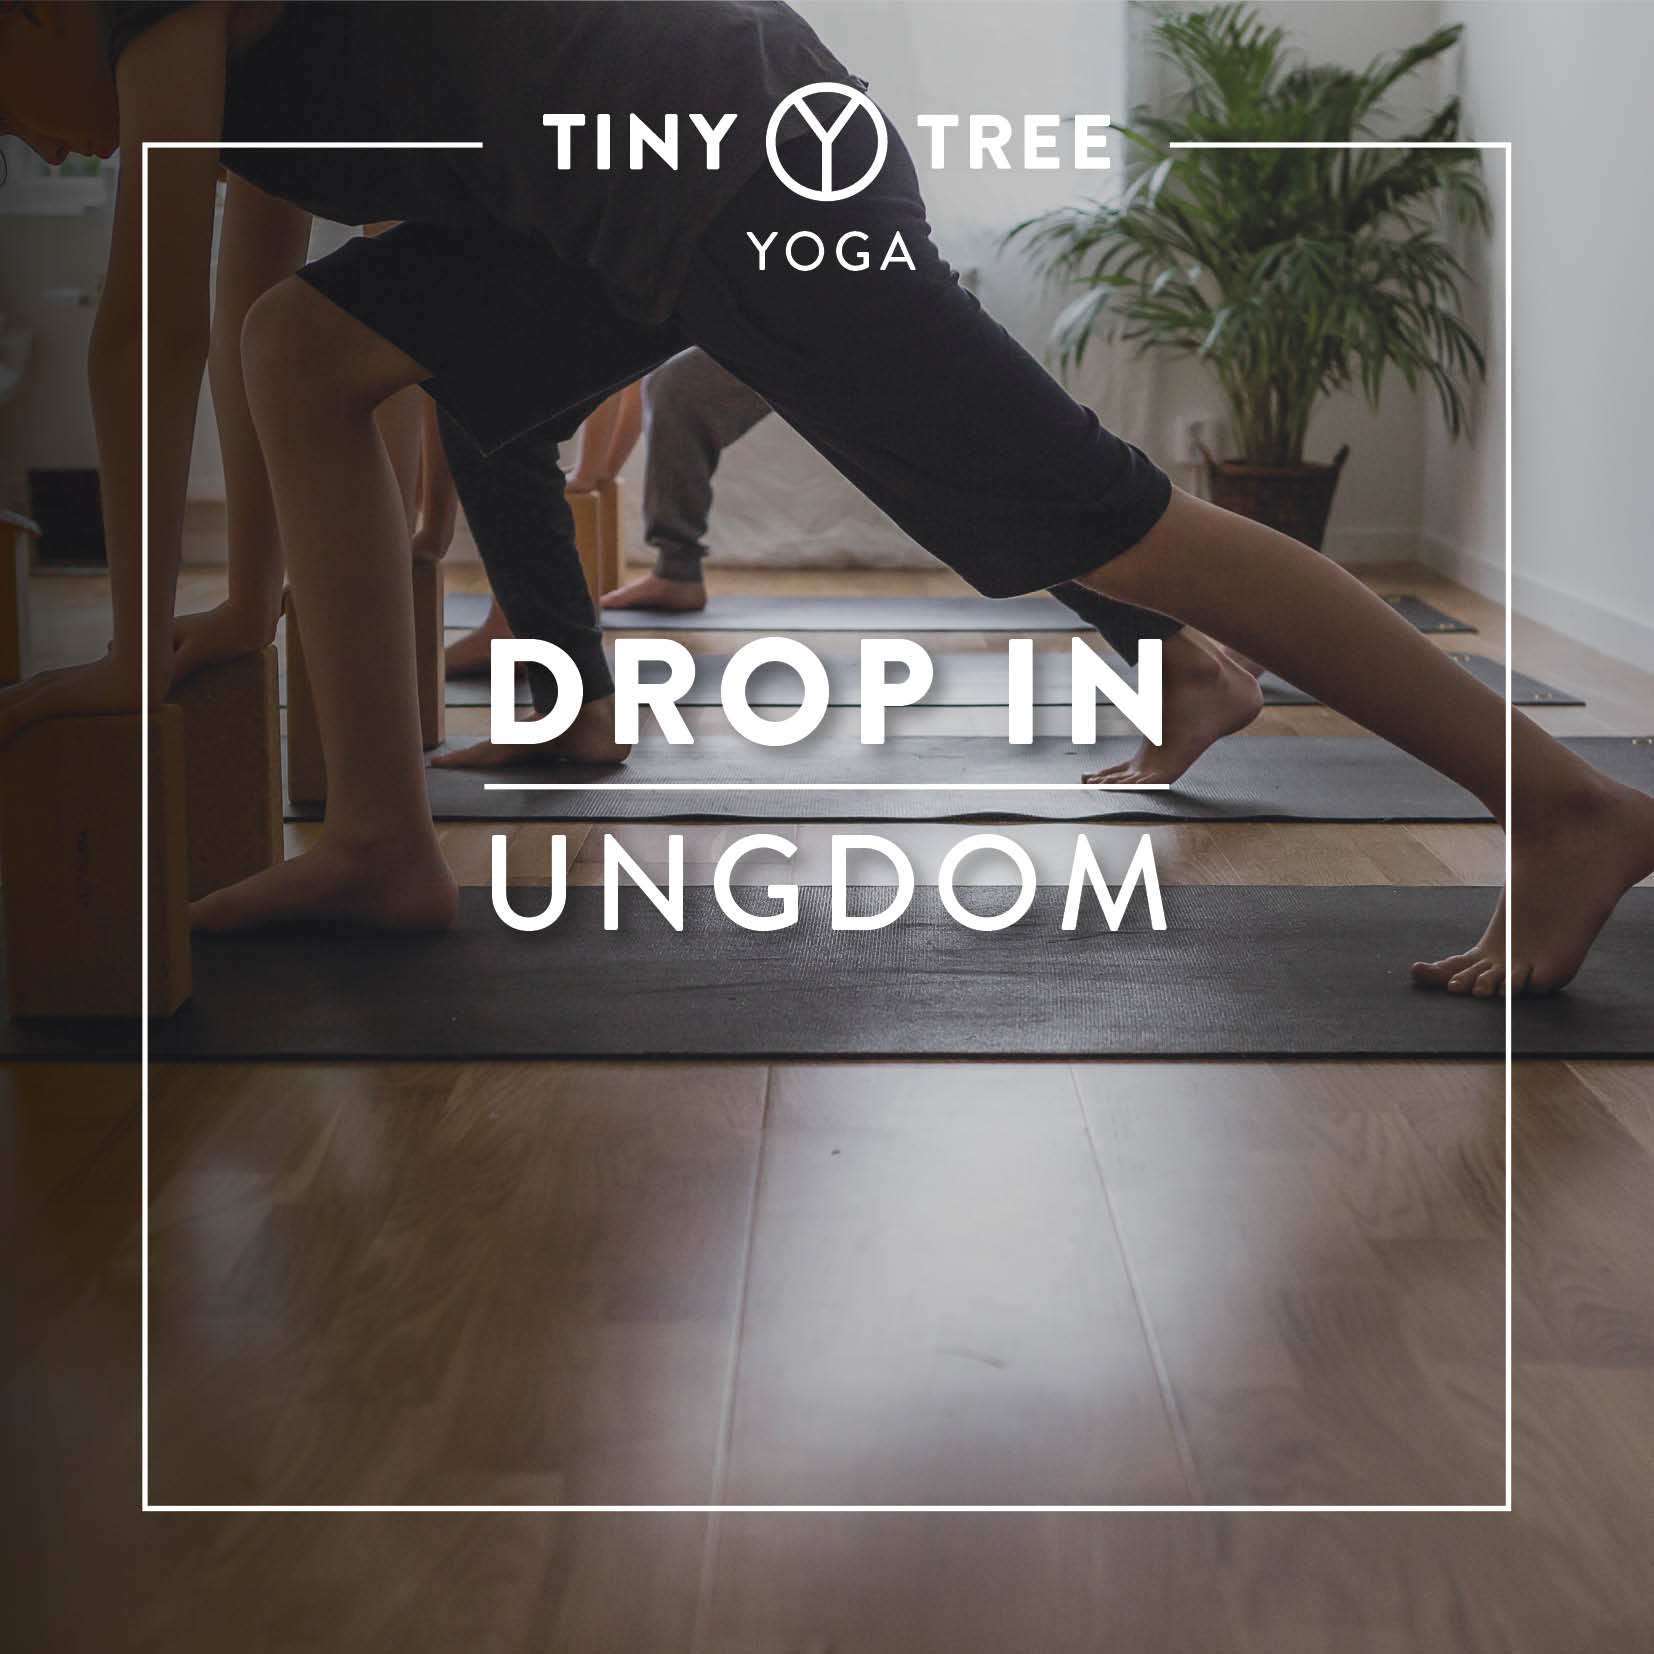 DROP IN YOGA UNGDOM